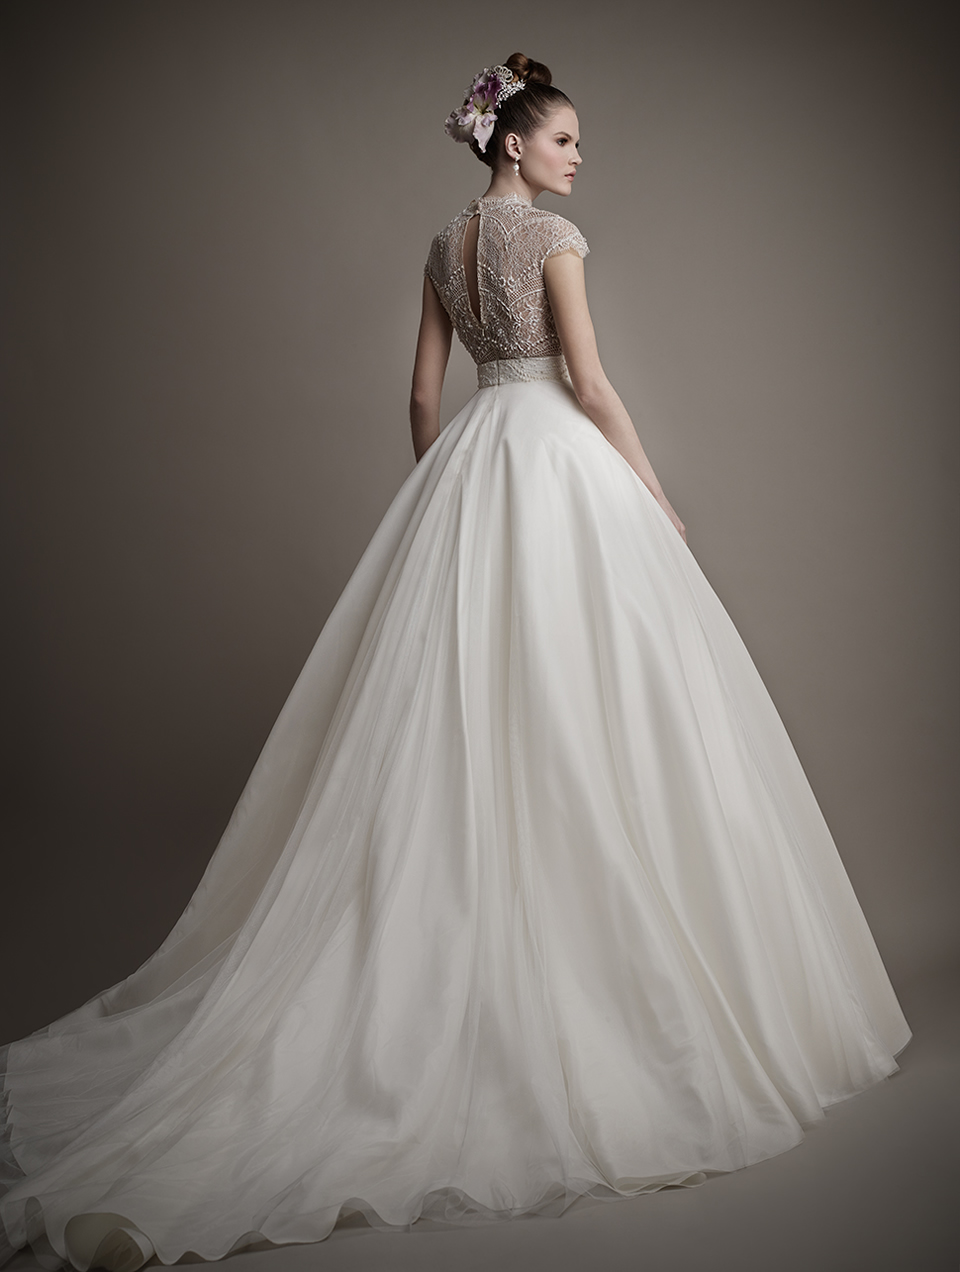 Ersa atelier 2015 bridal collection style to the aisle for Ersa atelier wedding dress